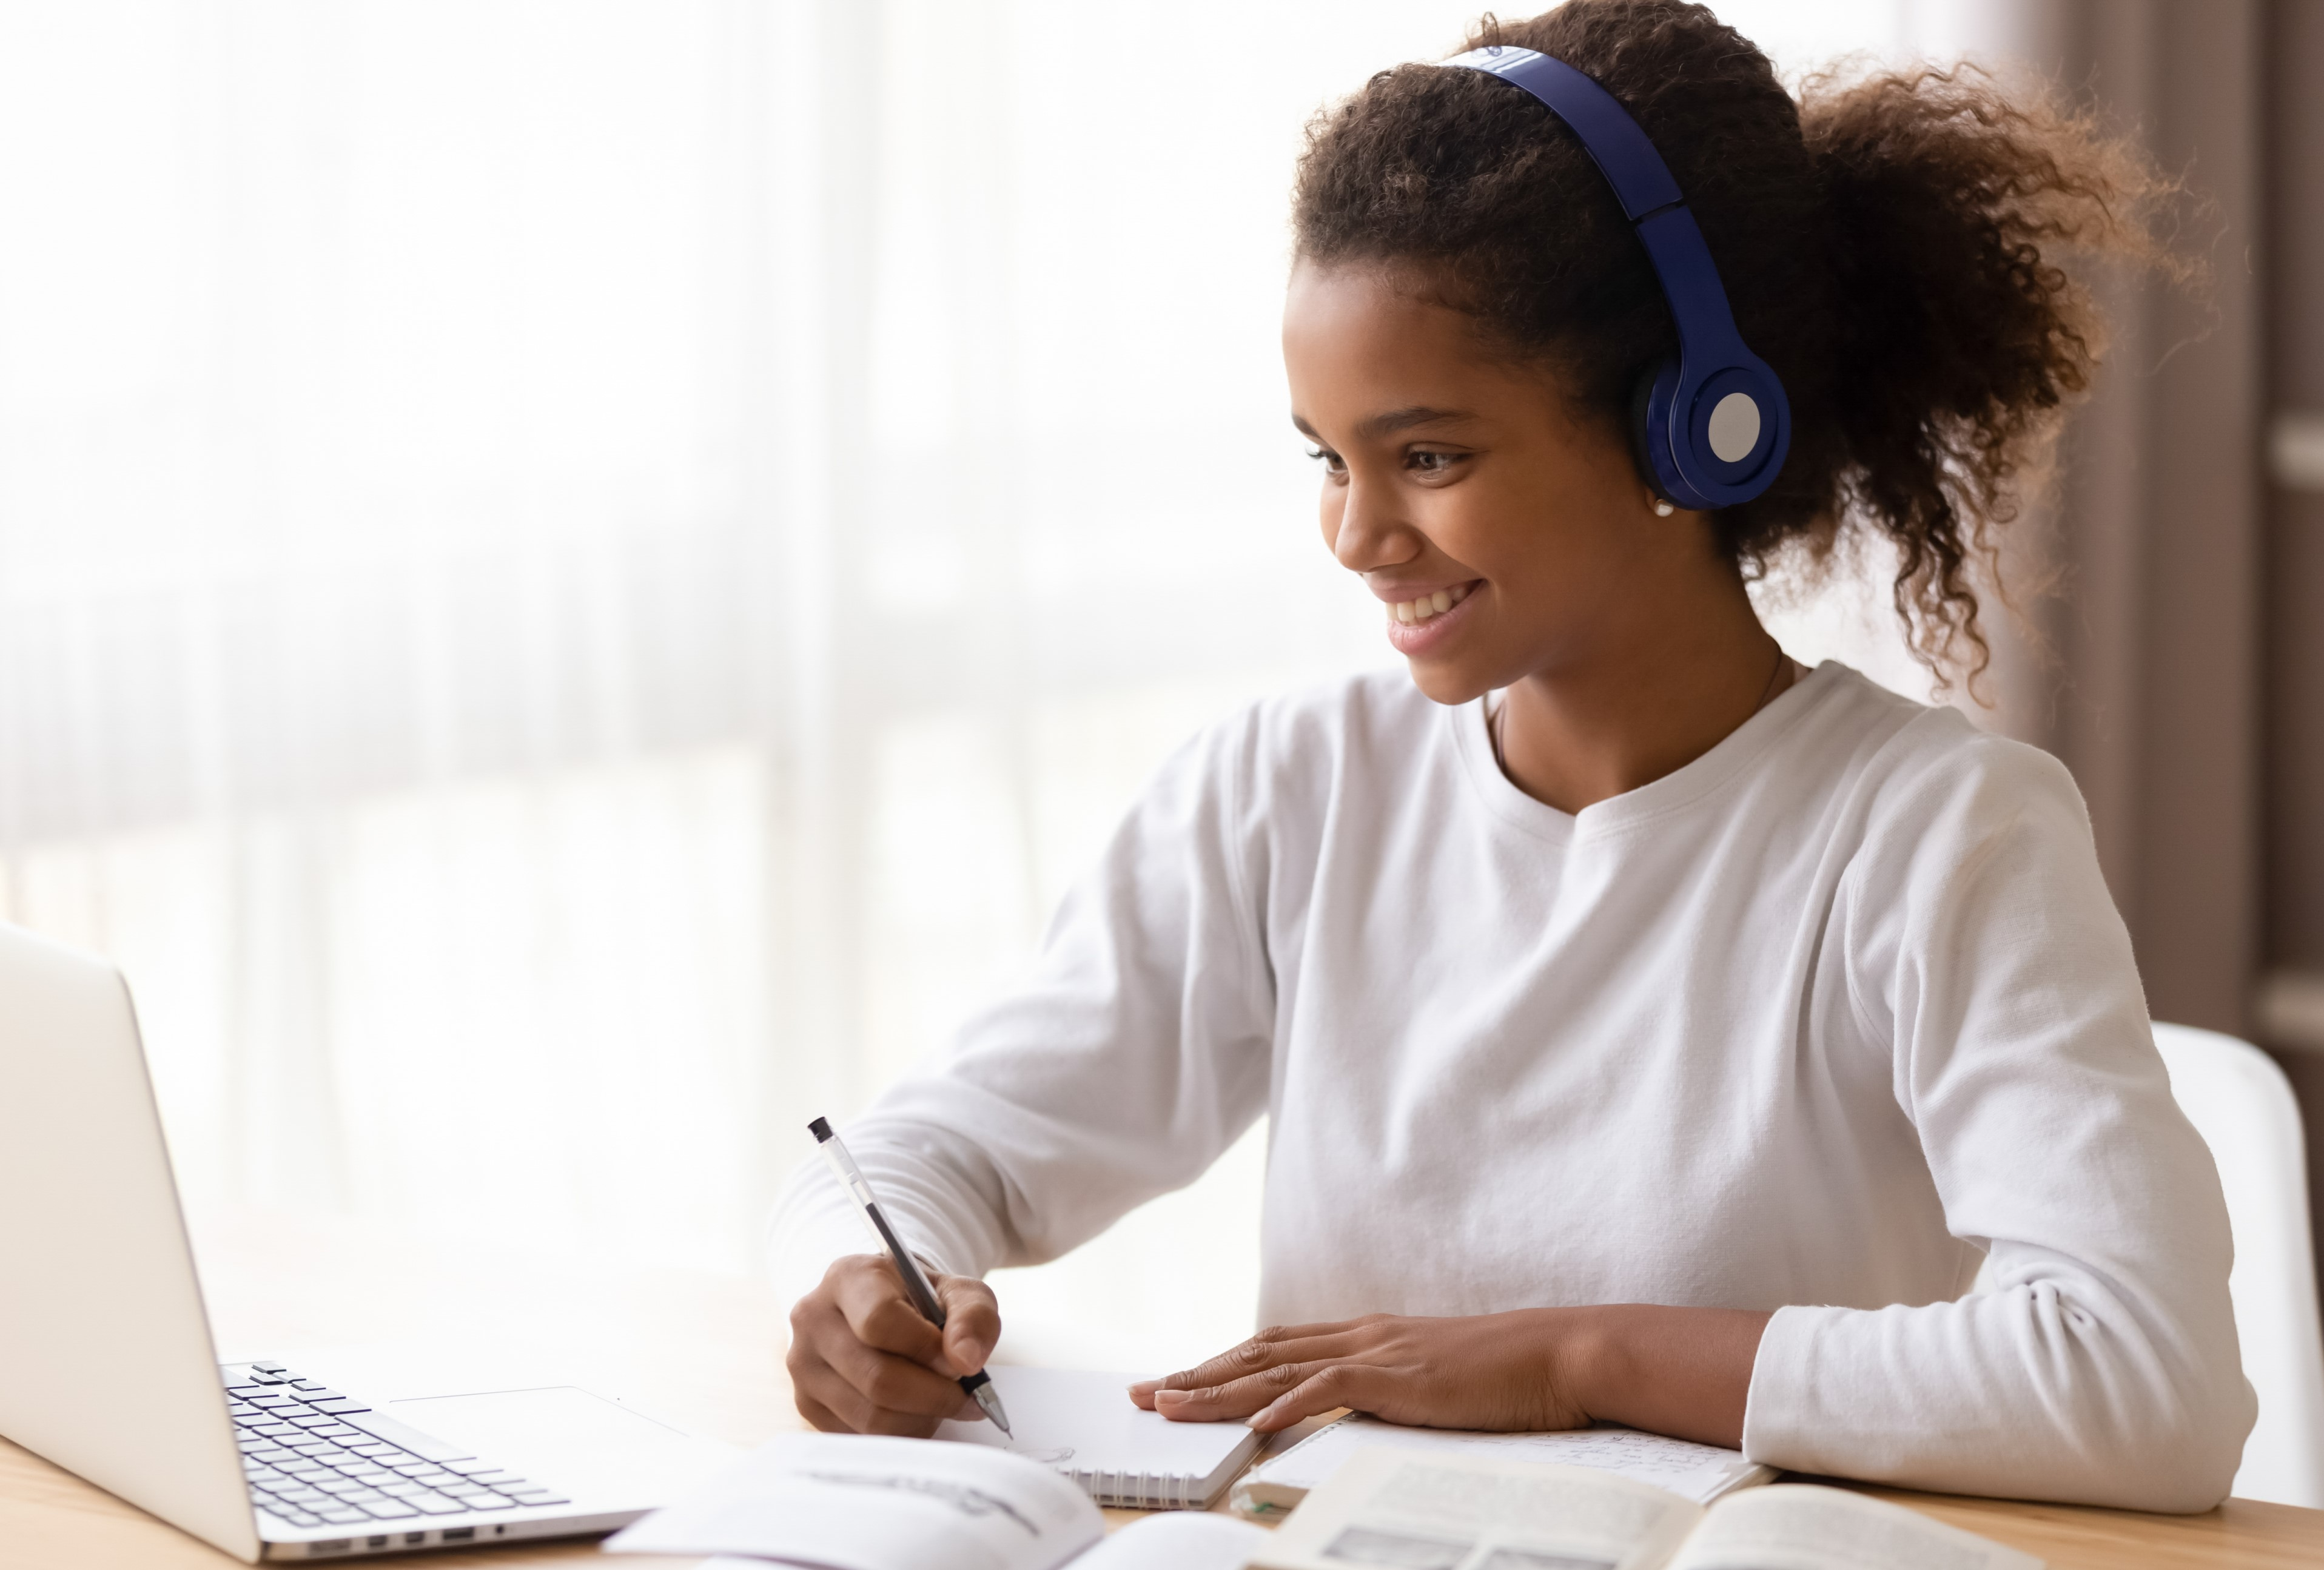 A girl wearing headphones sits in front of a computer